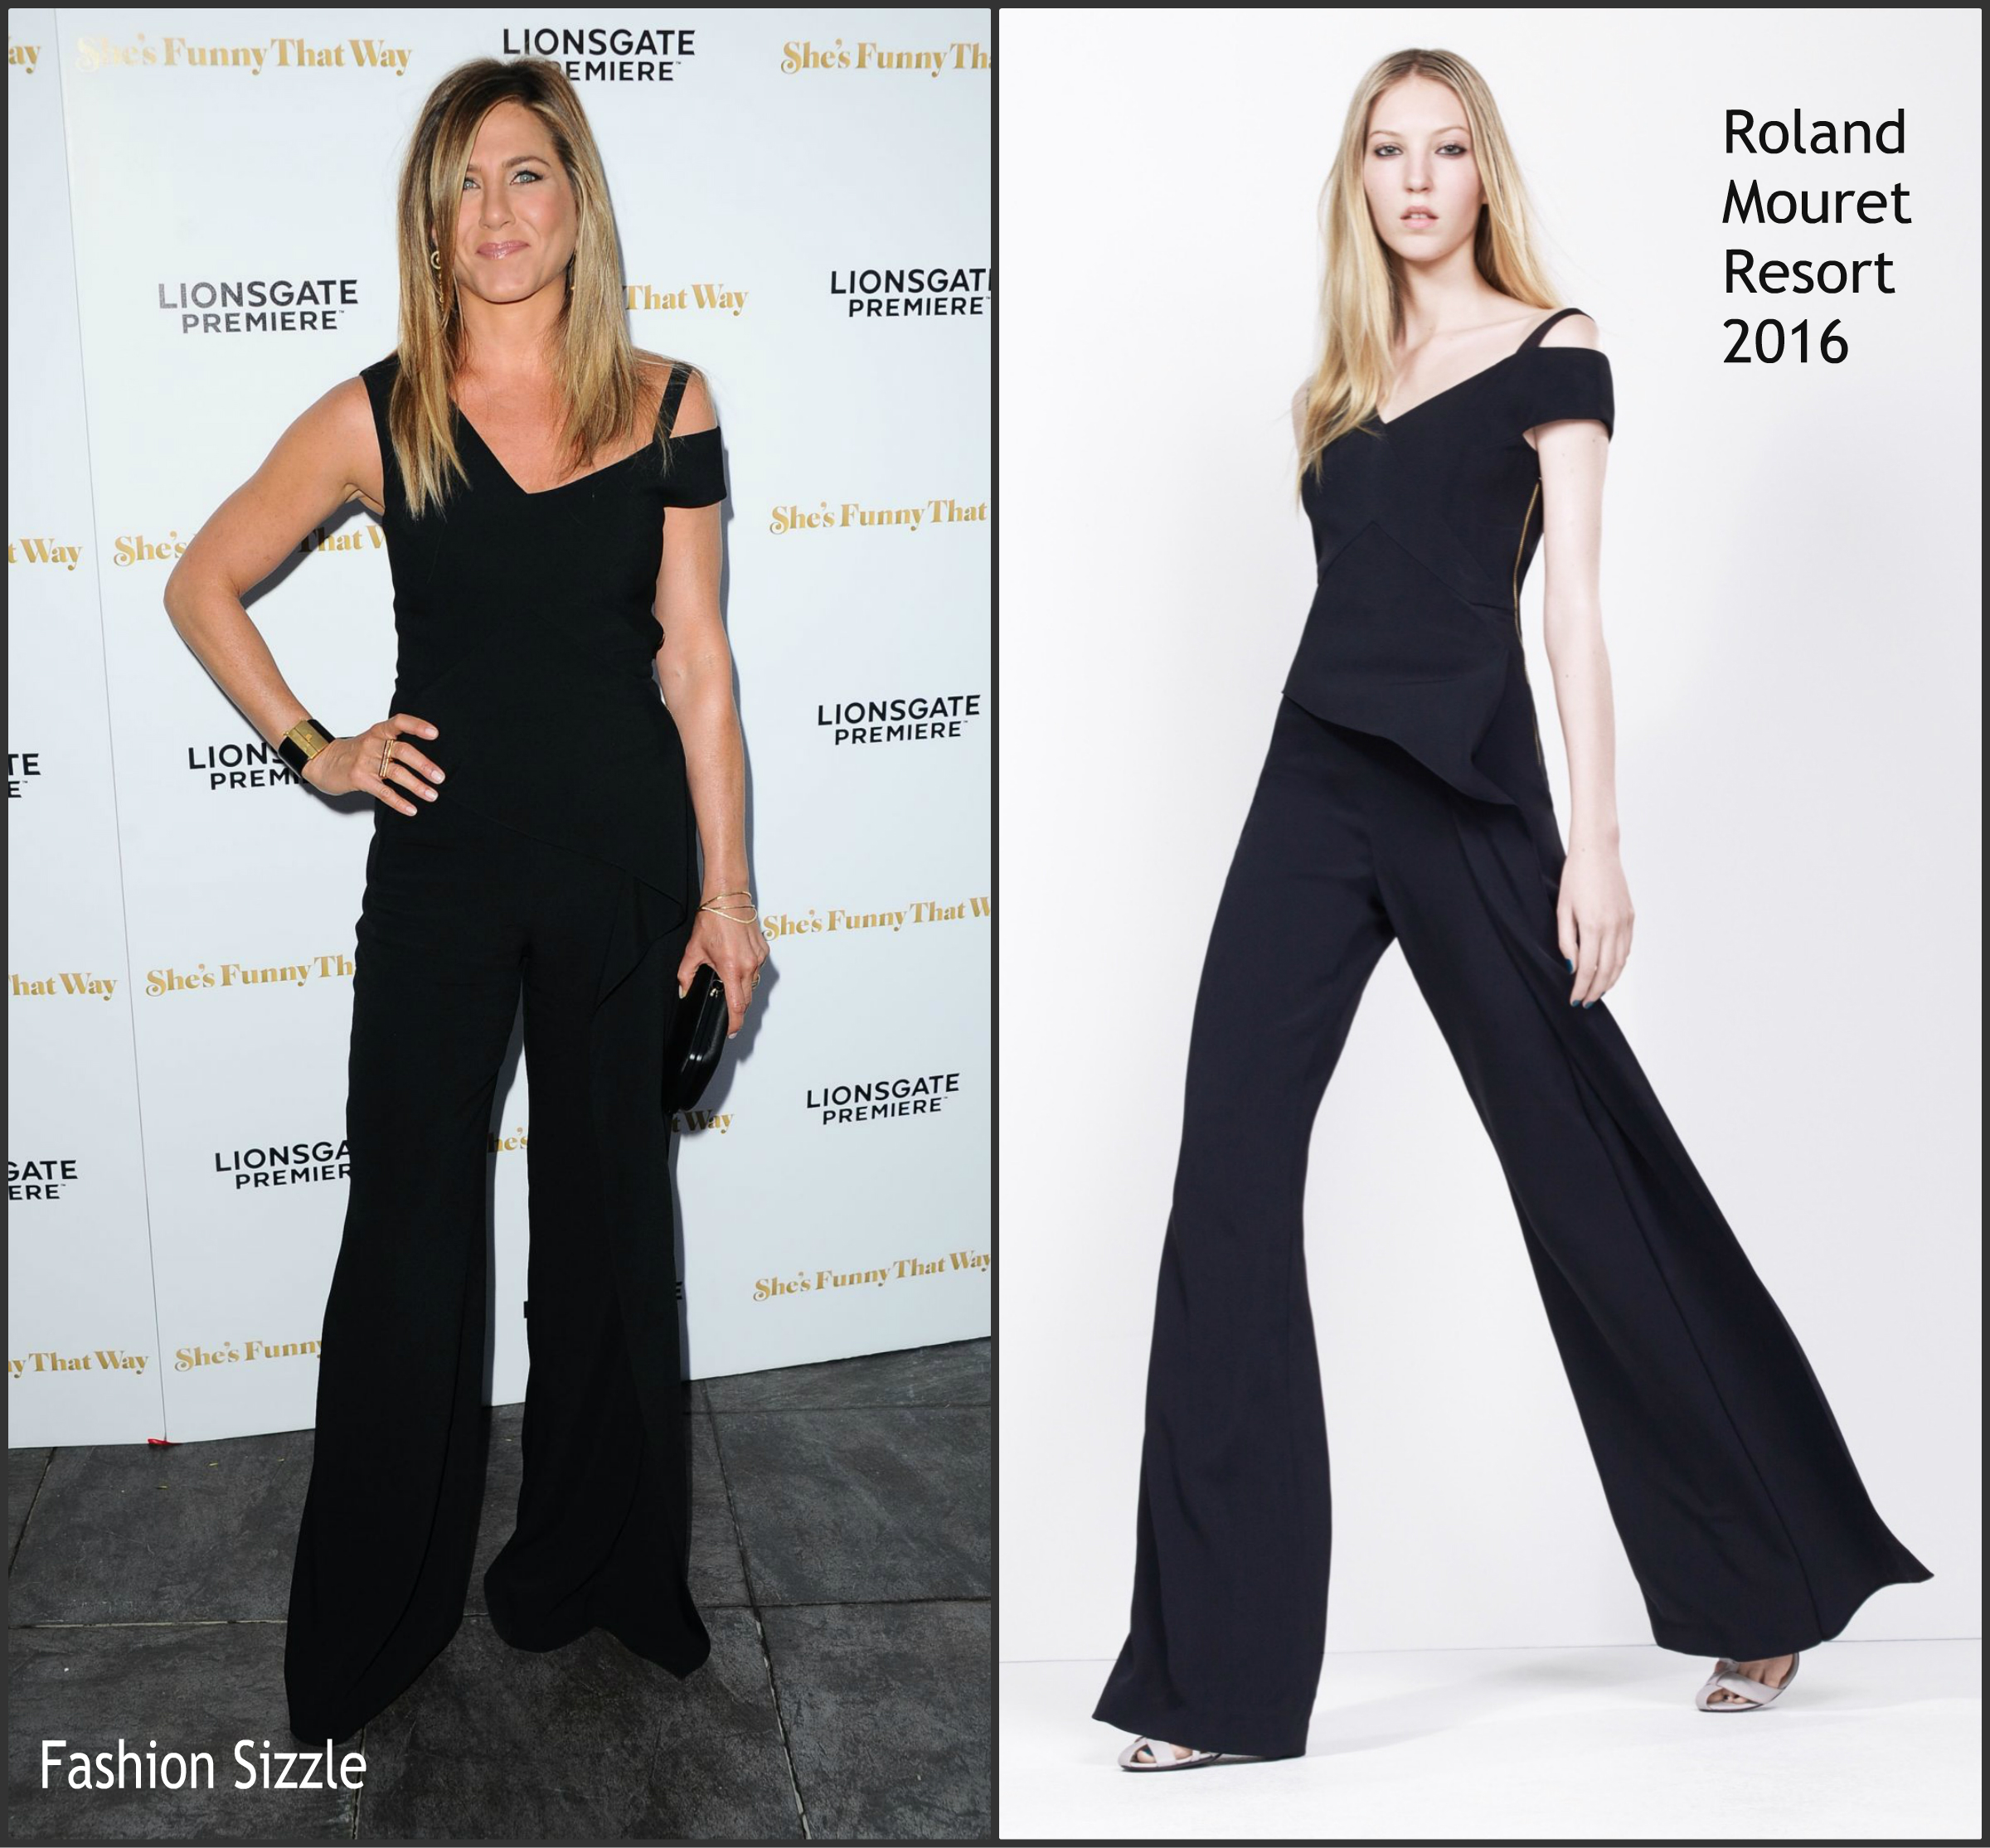 jennifer-aniston-in-roland-mouret-she-funny-that-way-la-premiere